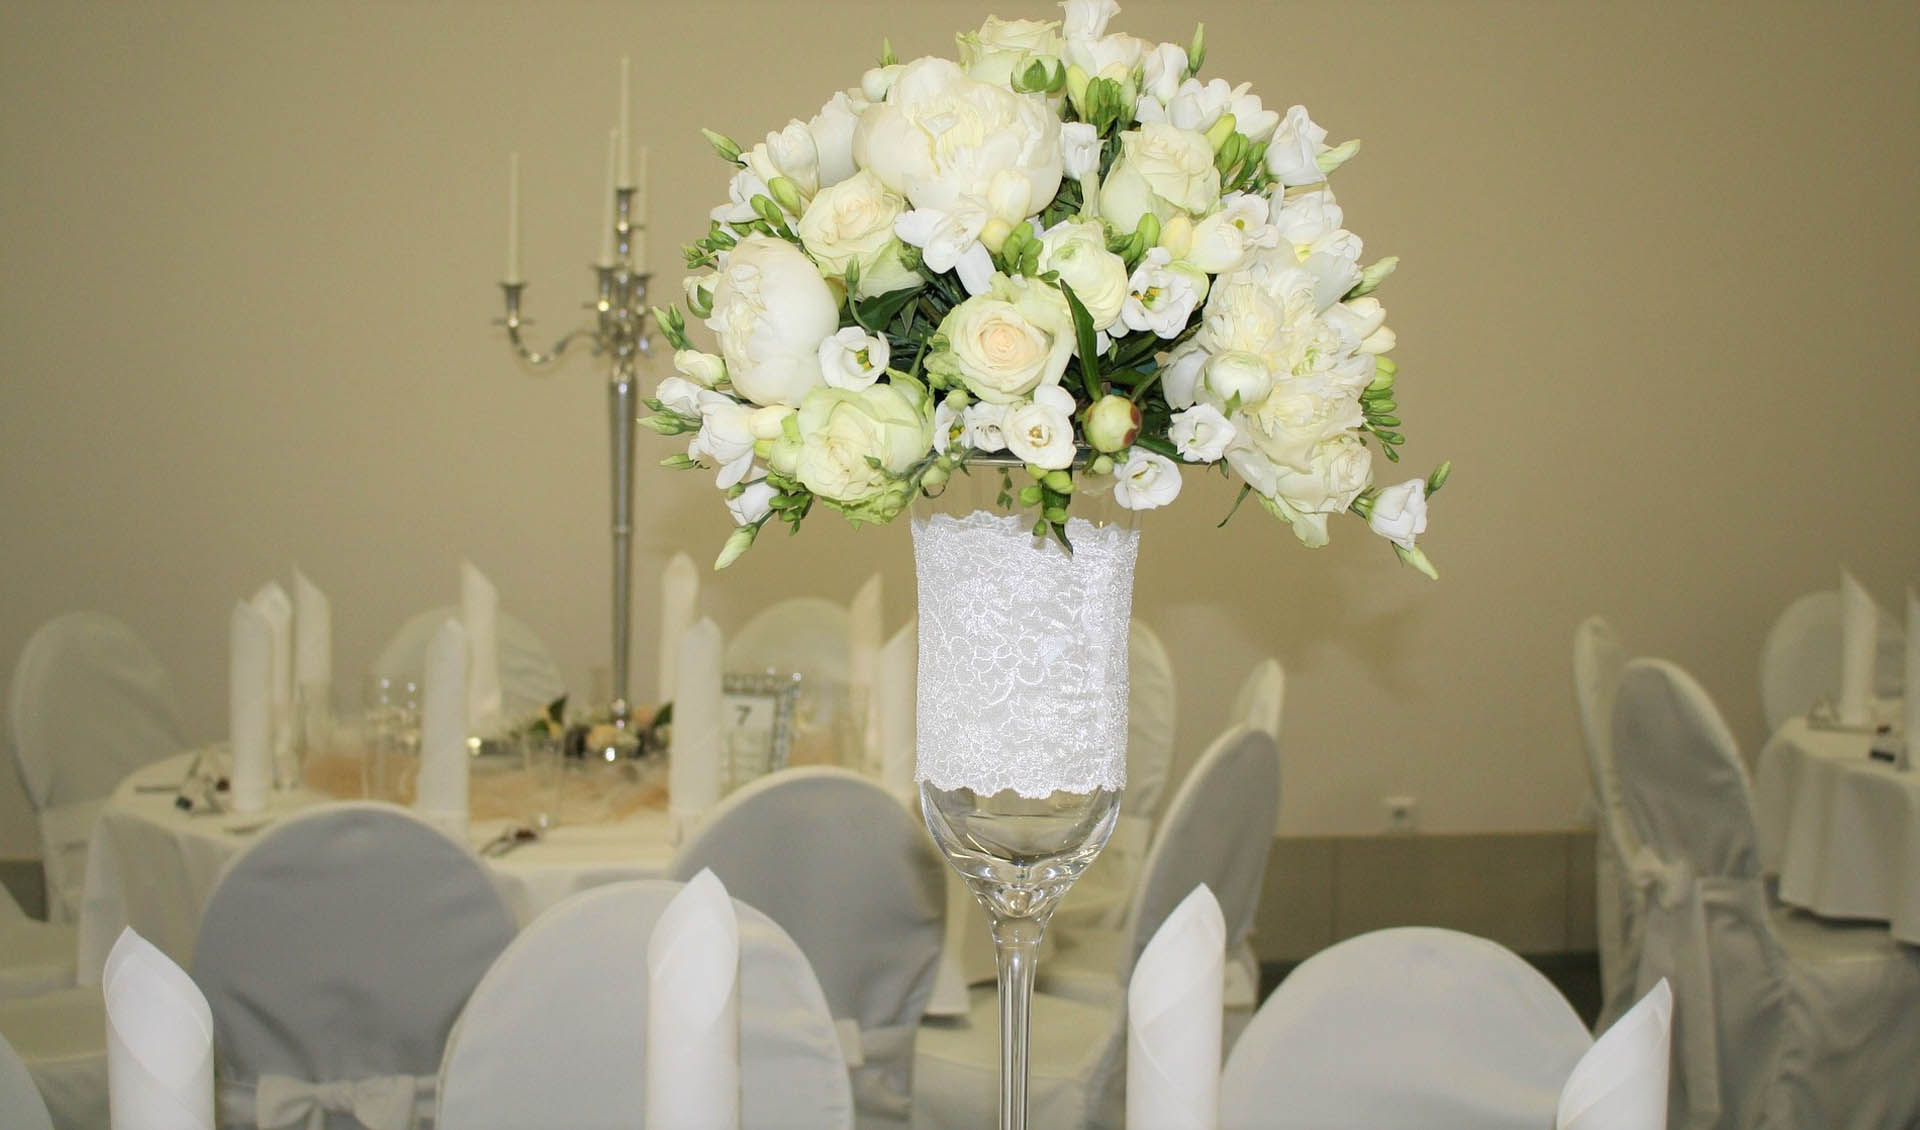 Flowers on table decoration